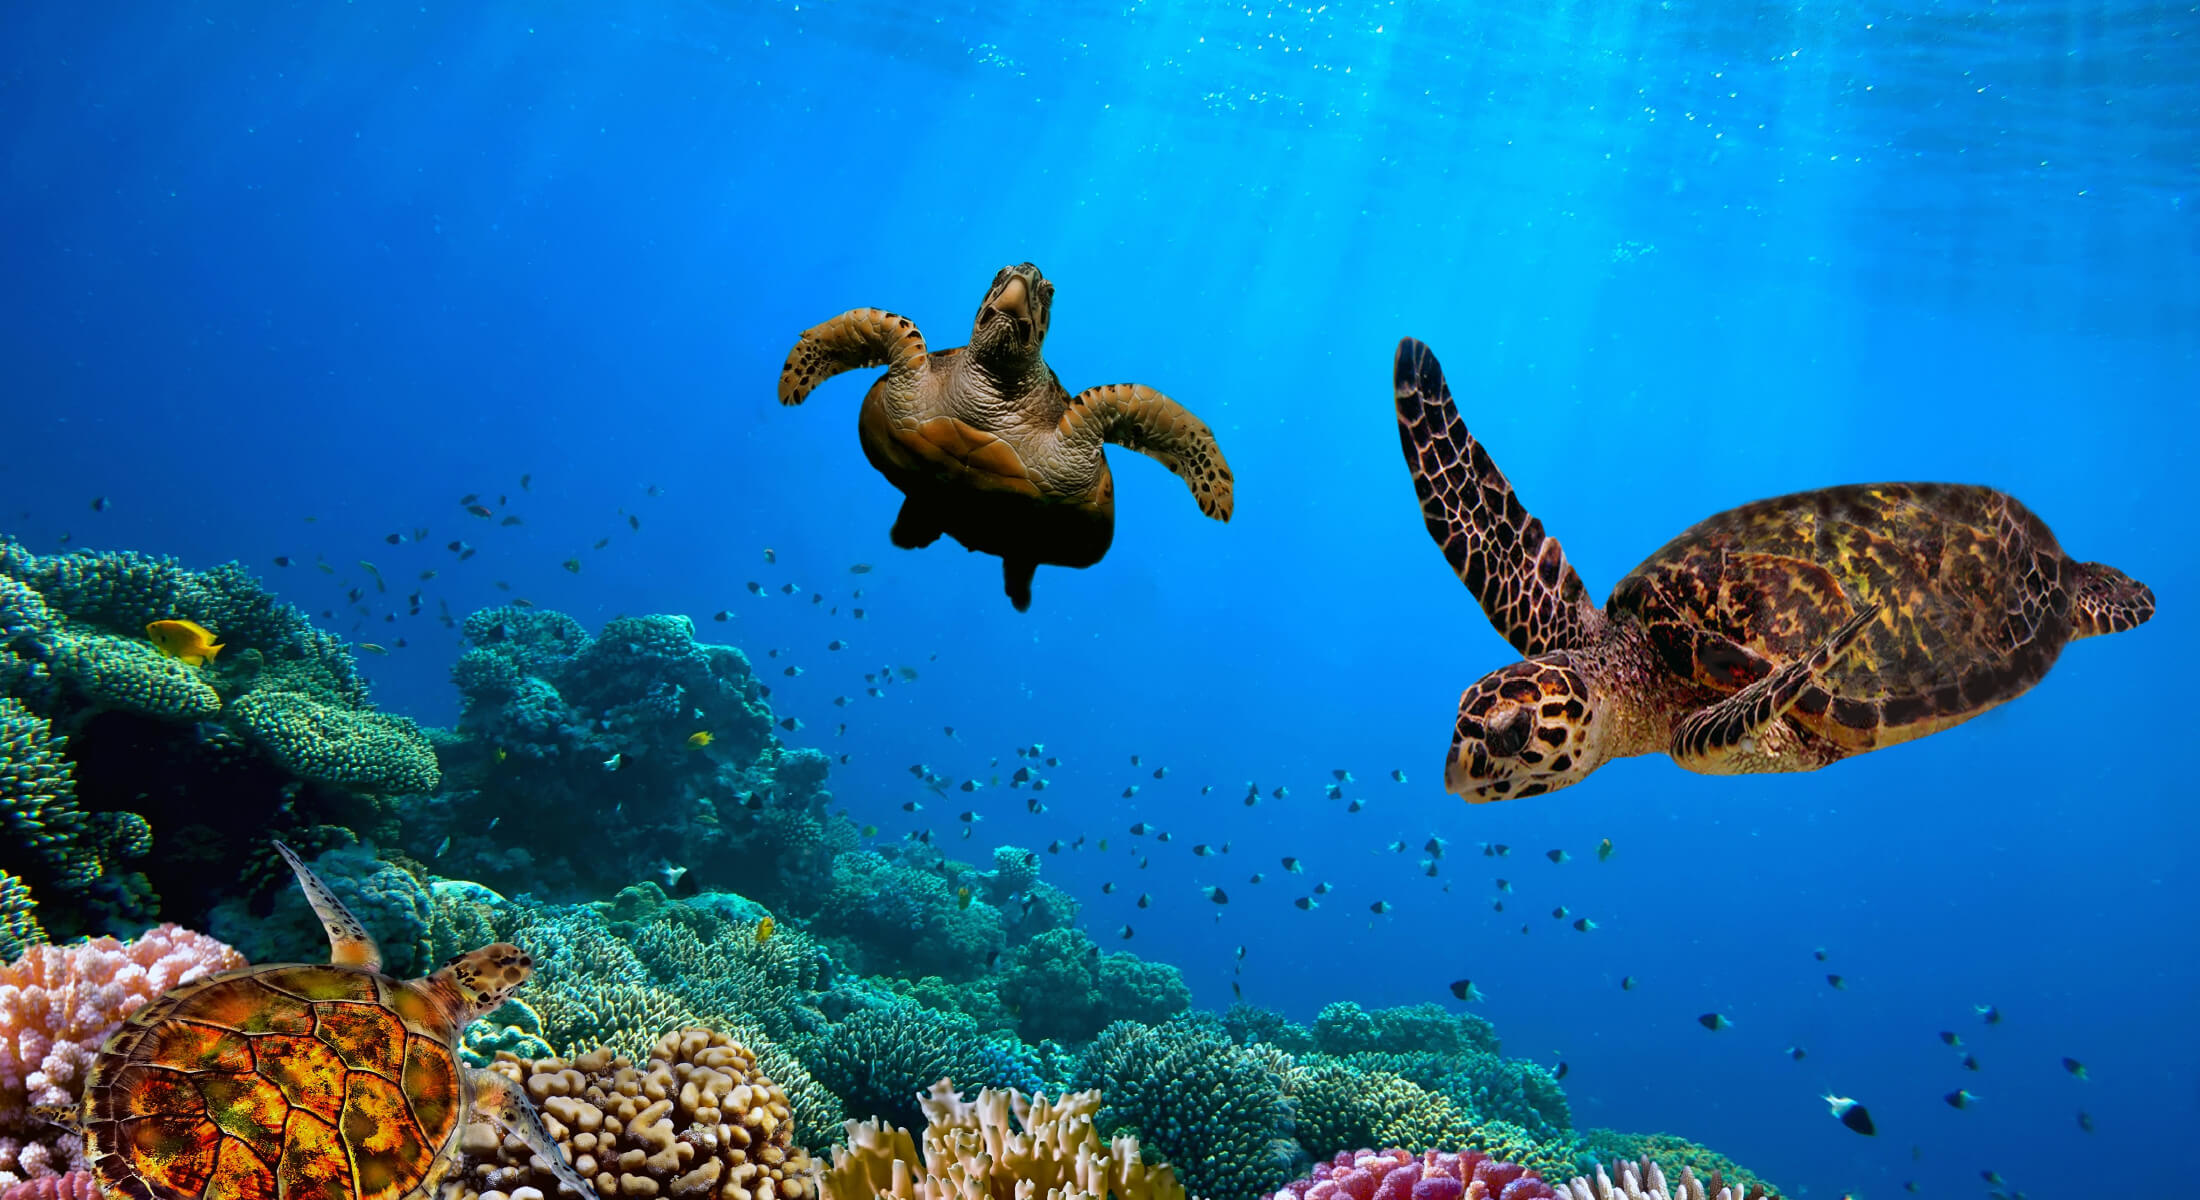 Turtles swimming at a coral reef in the Indian Ocean